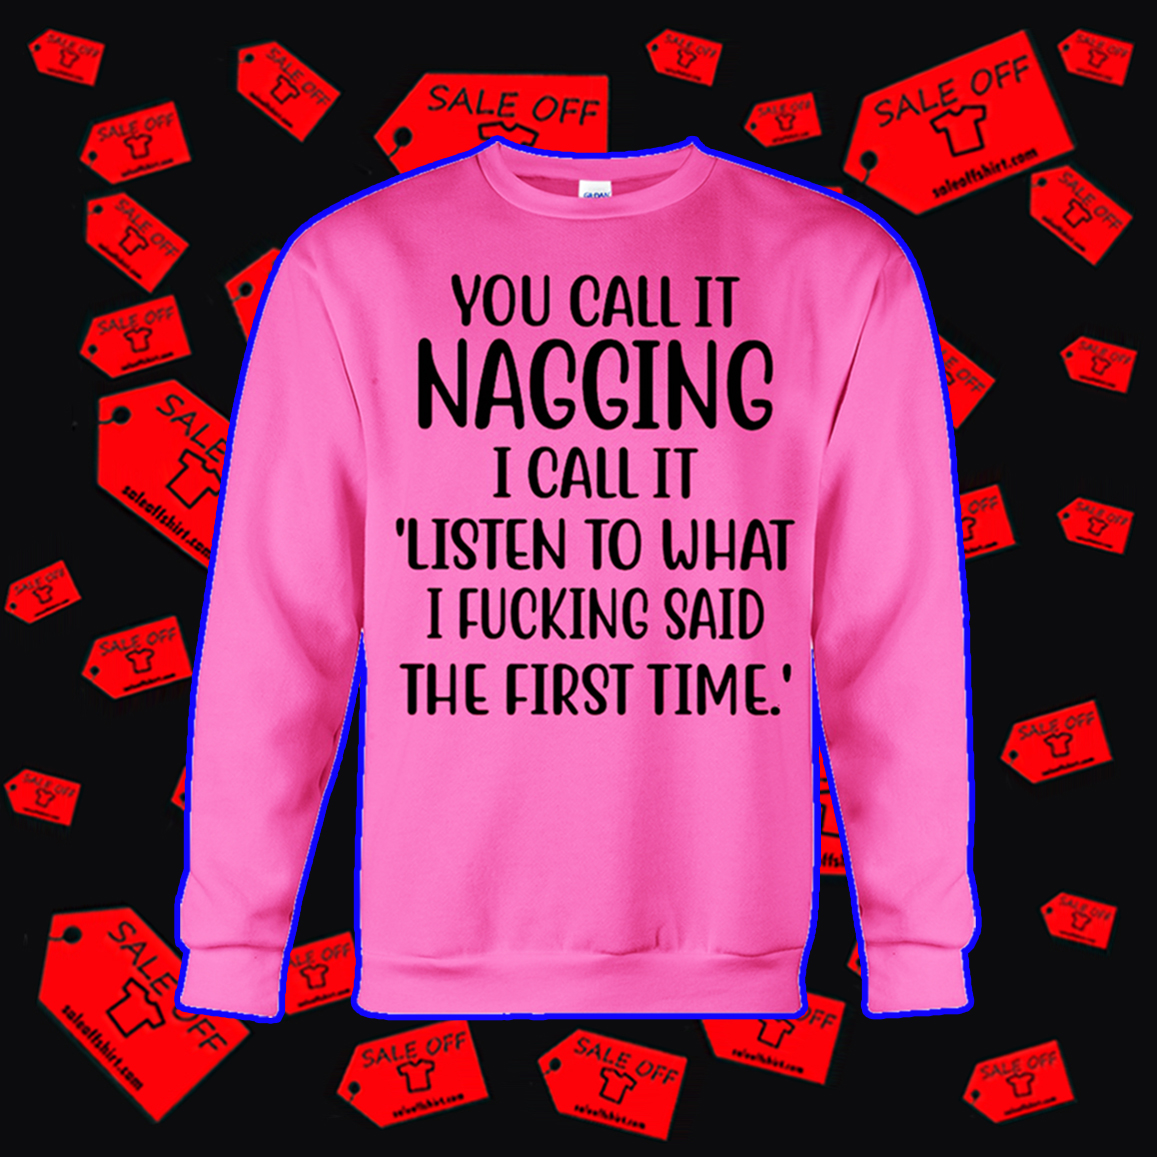 You call it nagging I call it listen to what I fucking said the first time sweatshirt